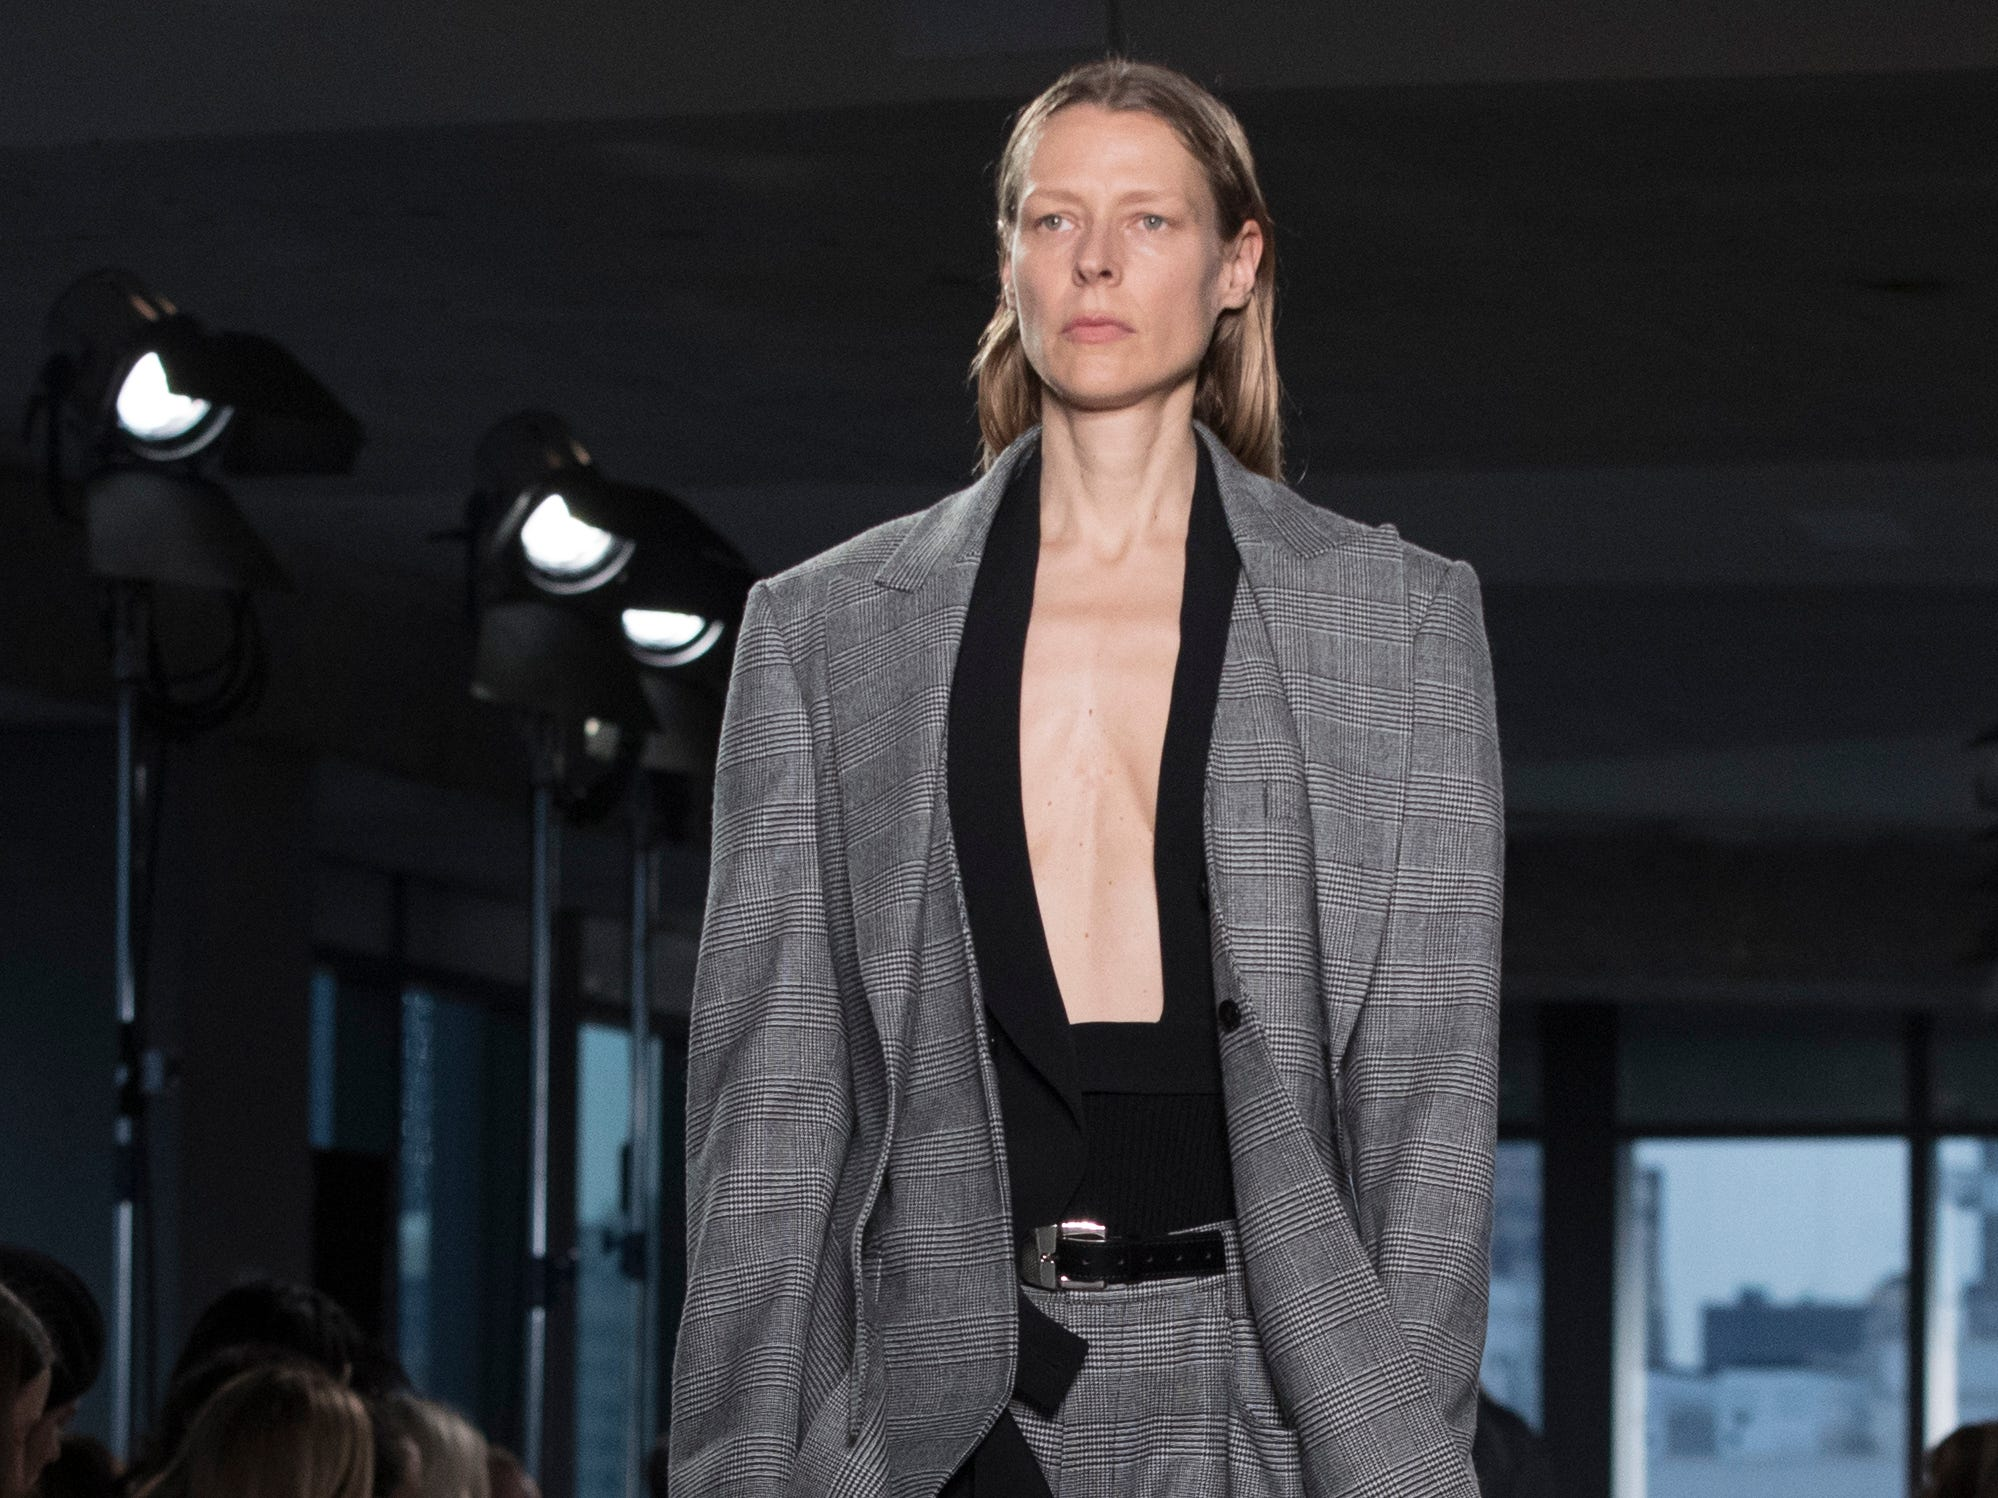 Oversized suiting is still in style at Proenza Schouler.